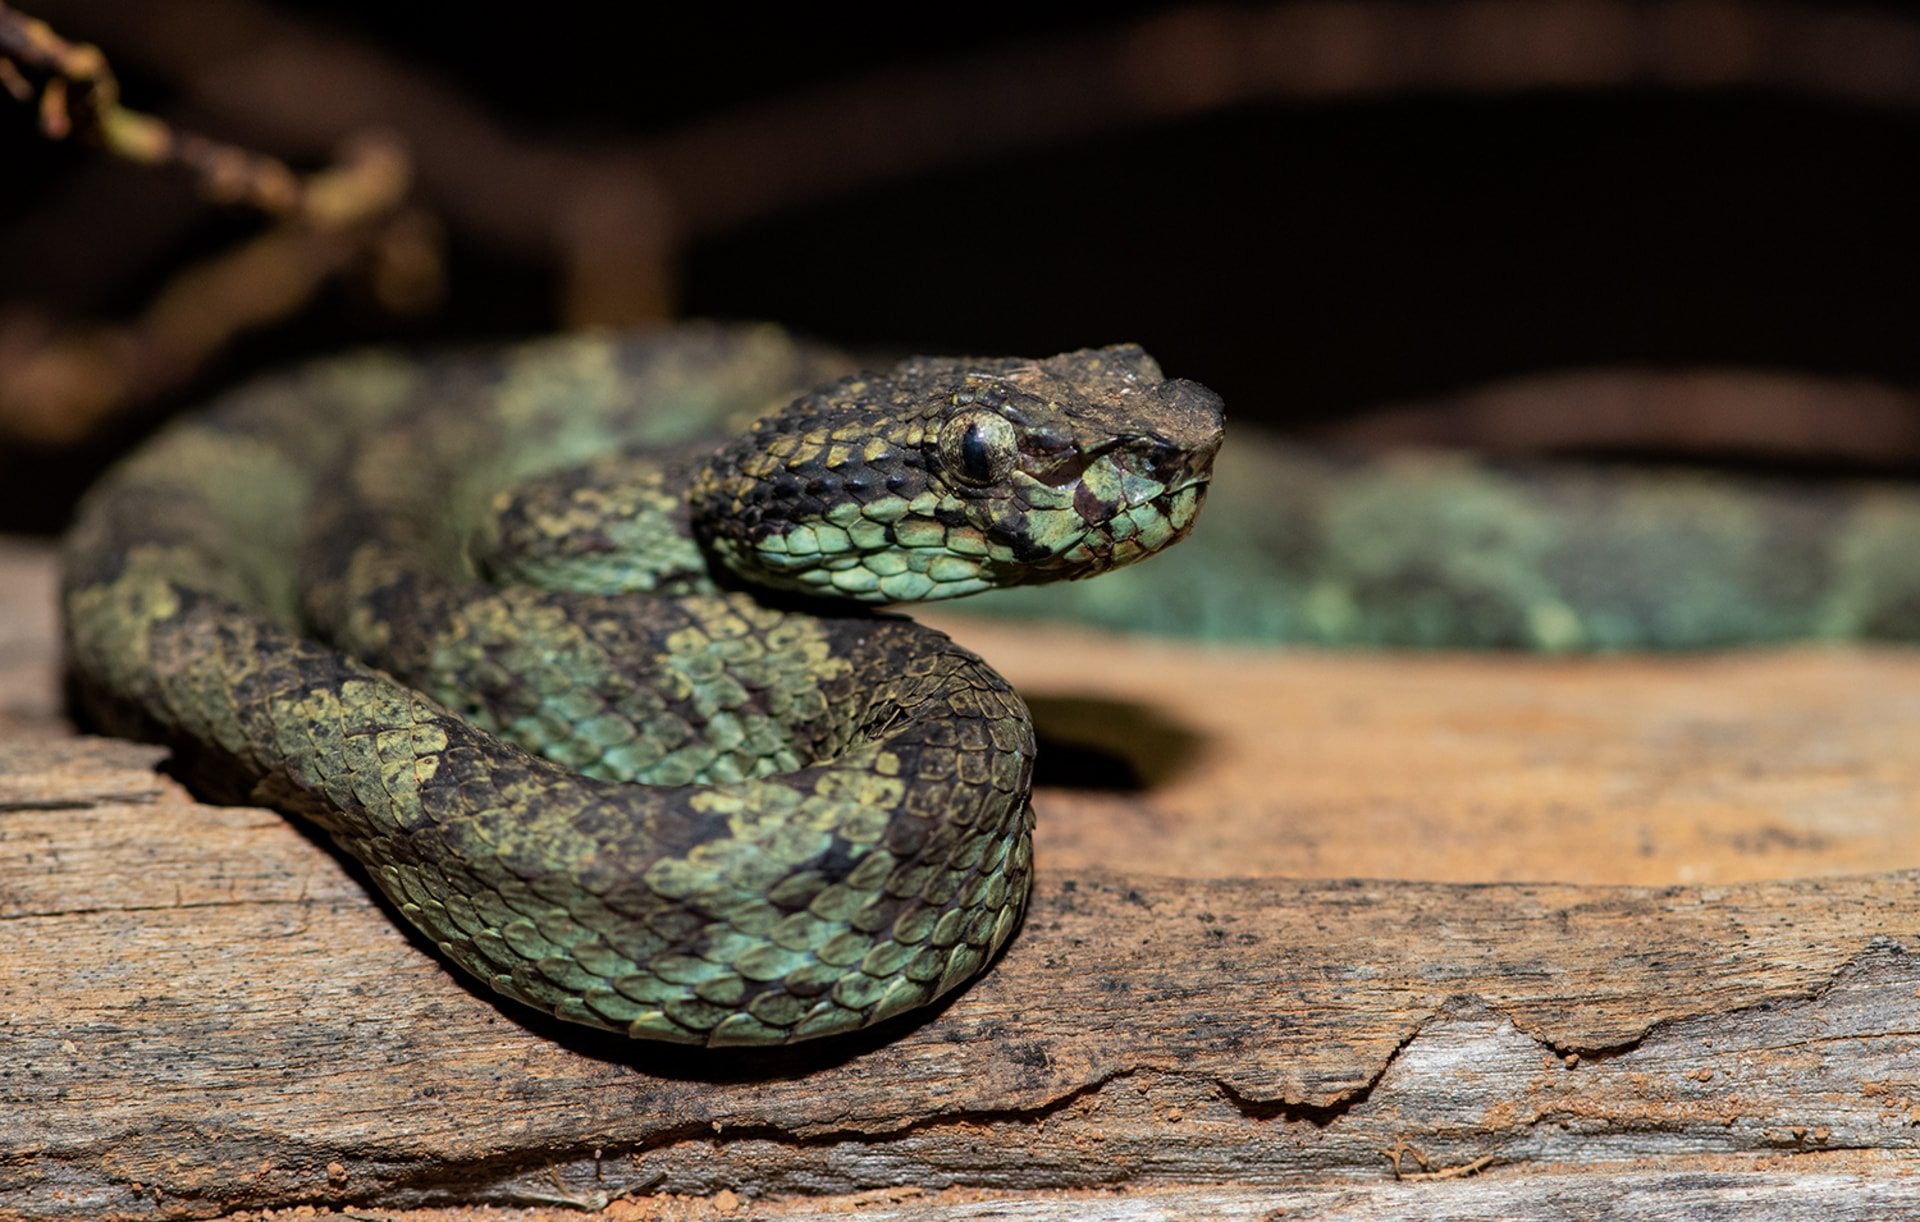 Malabar Pit Viper: Ambush in the Well of Life and Death